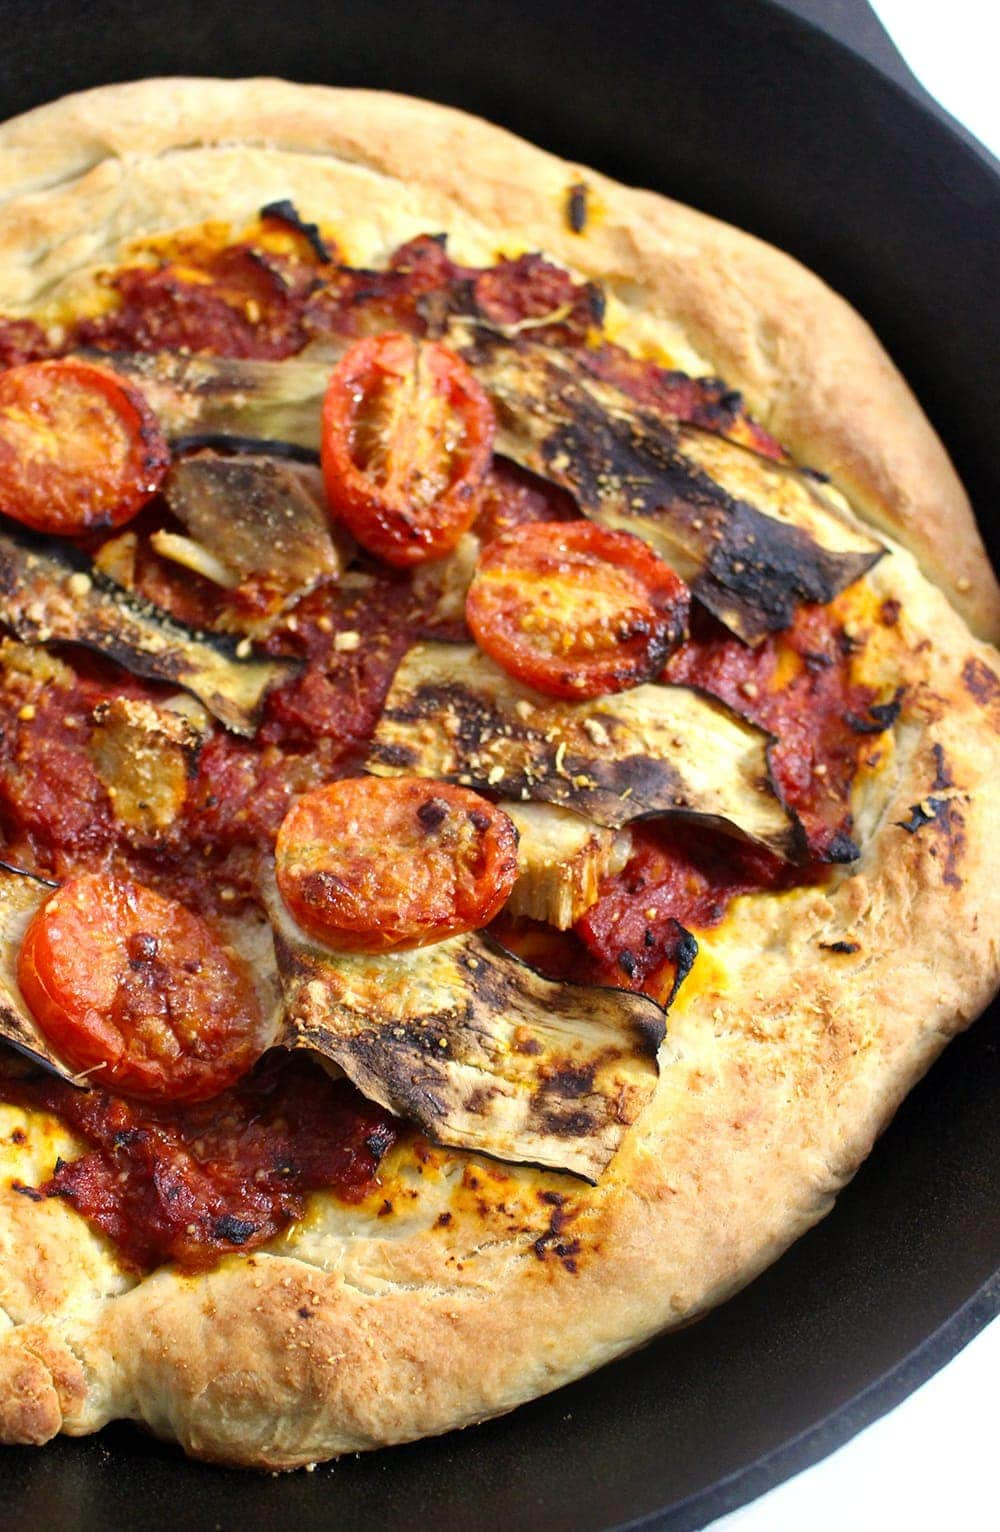 This roasted garlic, pork & aubergine pizza is the perfect combination of garlicky, meaty, salty goodness. It's perfect for using up leftover roast pork!